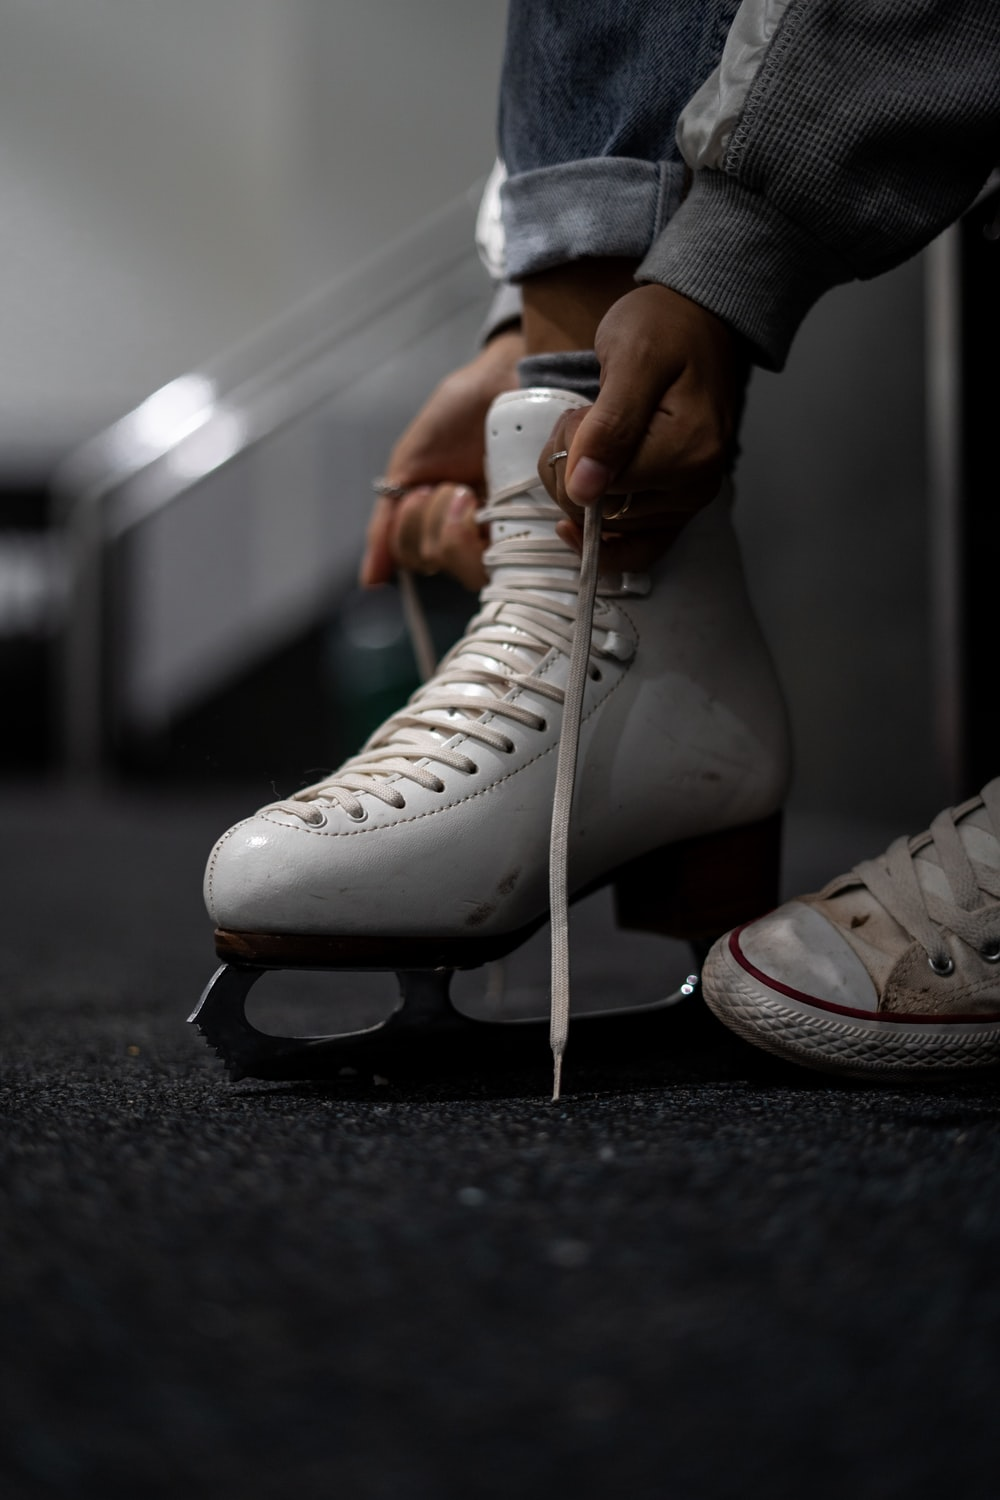 person wearing white leather ice skate